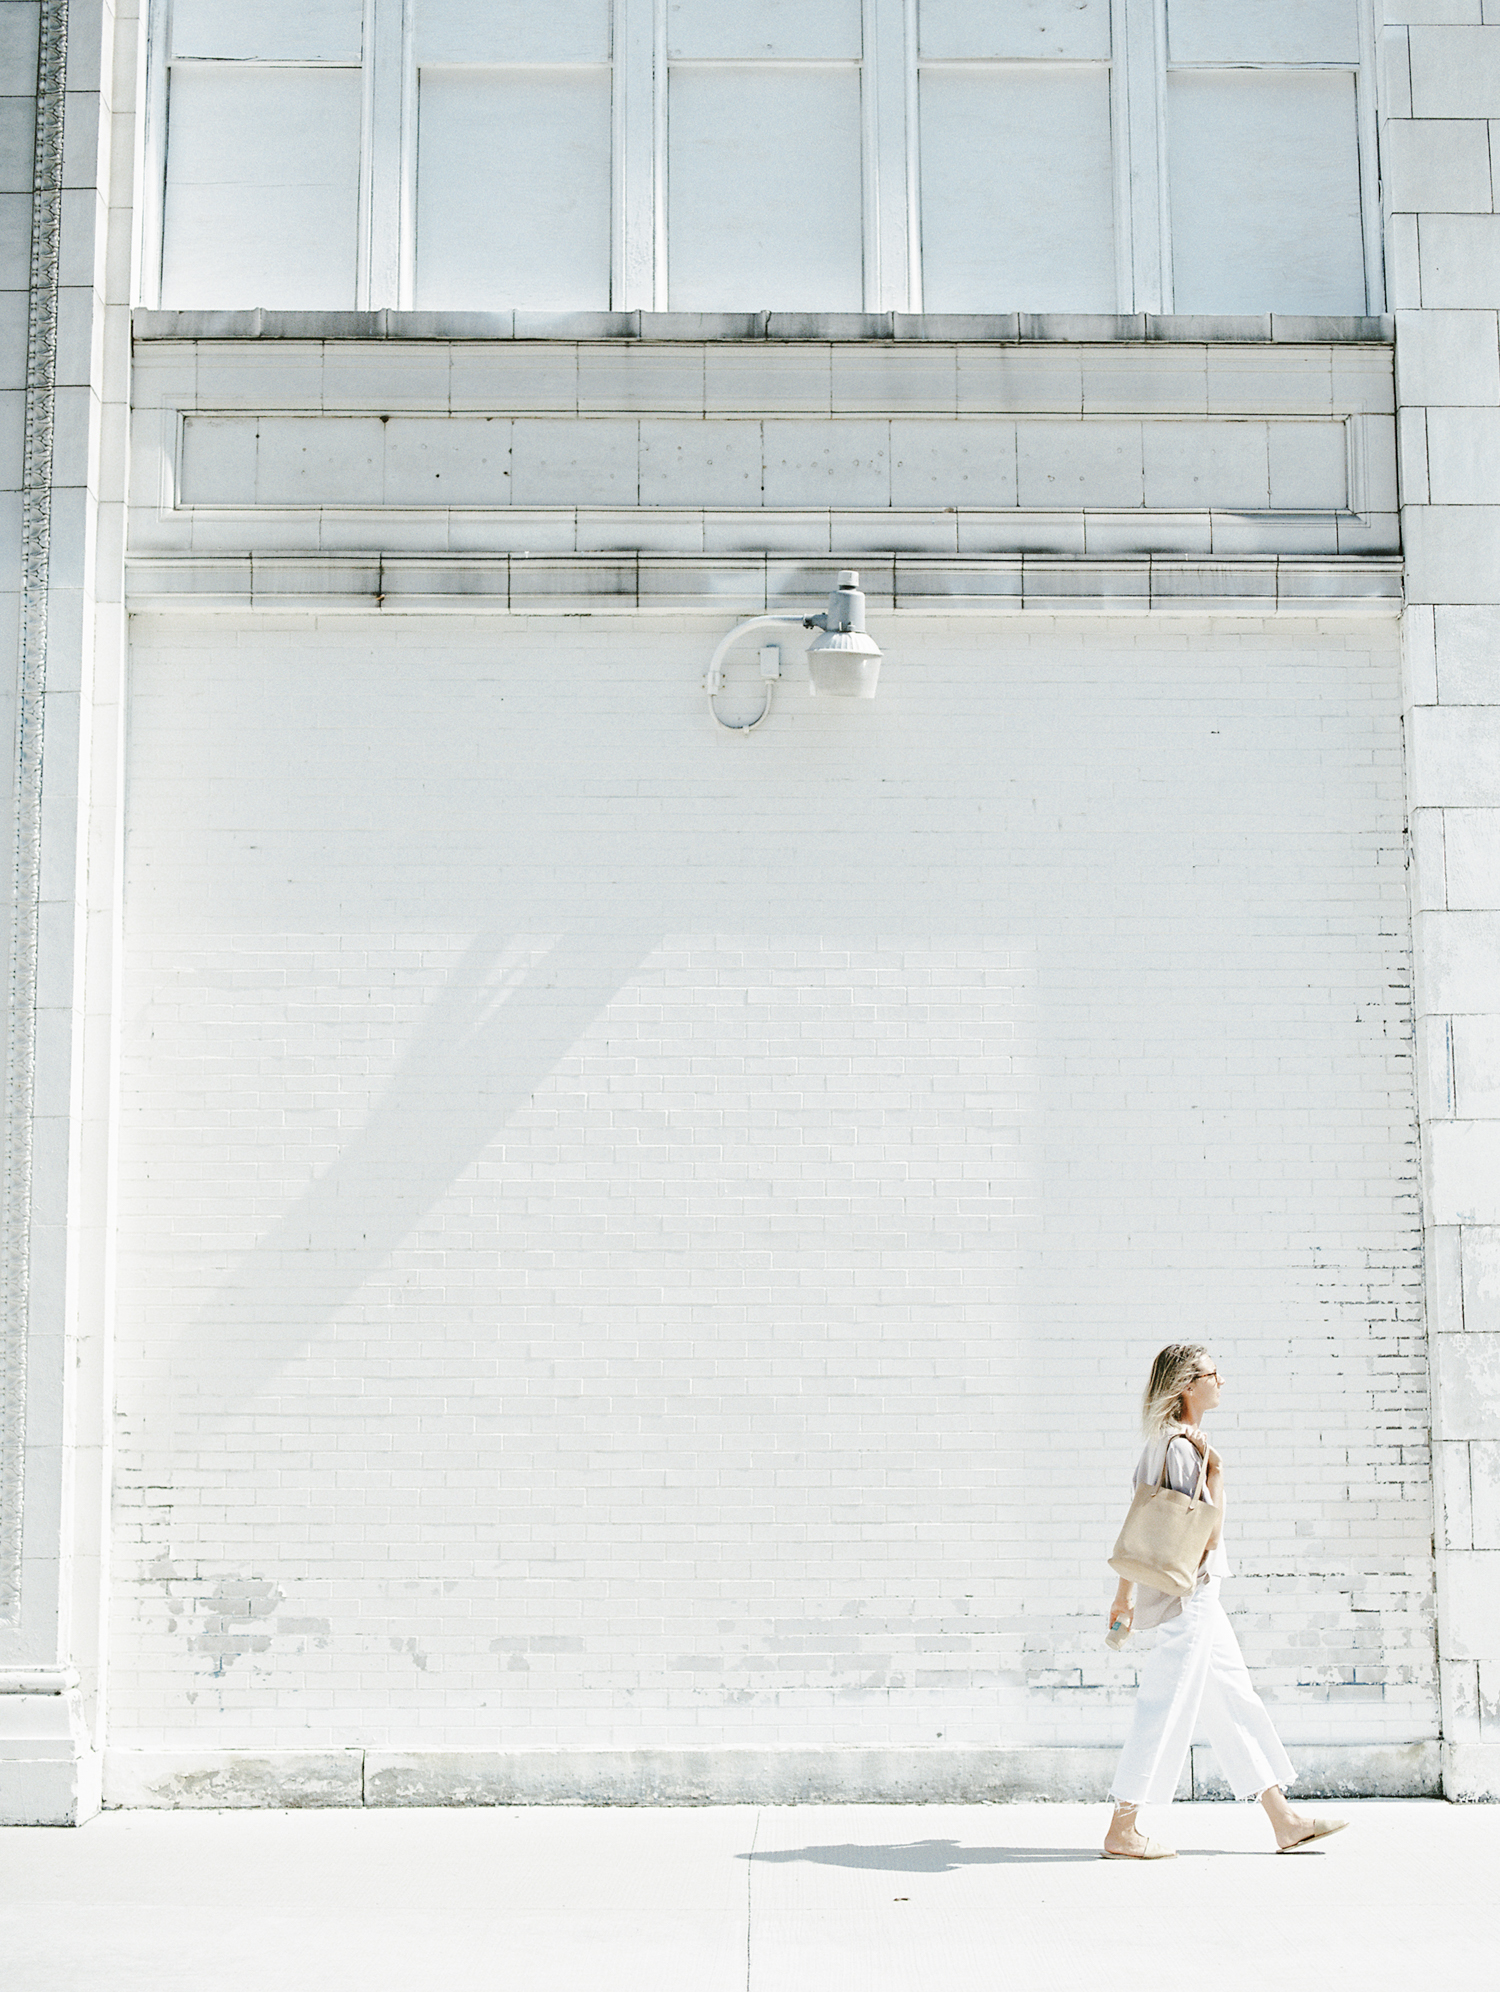 A brand designer walks along a beautiful white distressed brick building in Detroit during her brand photoshoot on film